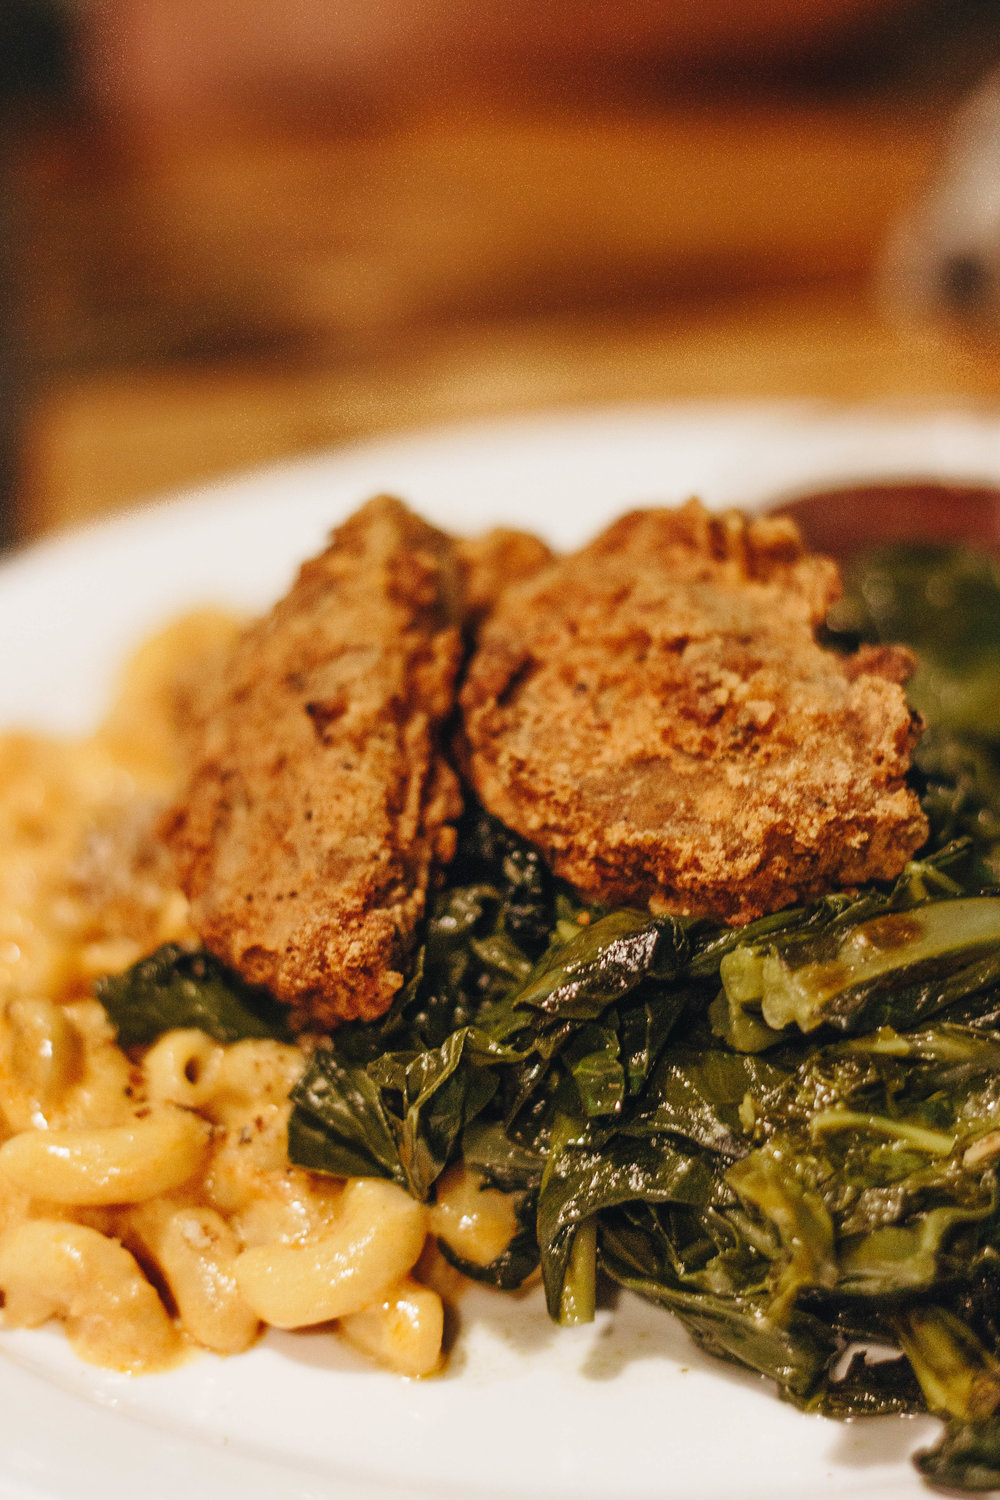 Indulging in Comfort Food at Hogtown Vegan in Toronto: Southern Combo - mac and chees, collard greens and fried chicken